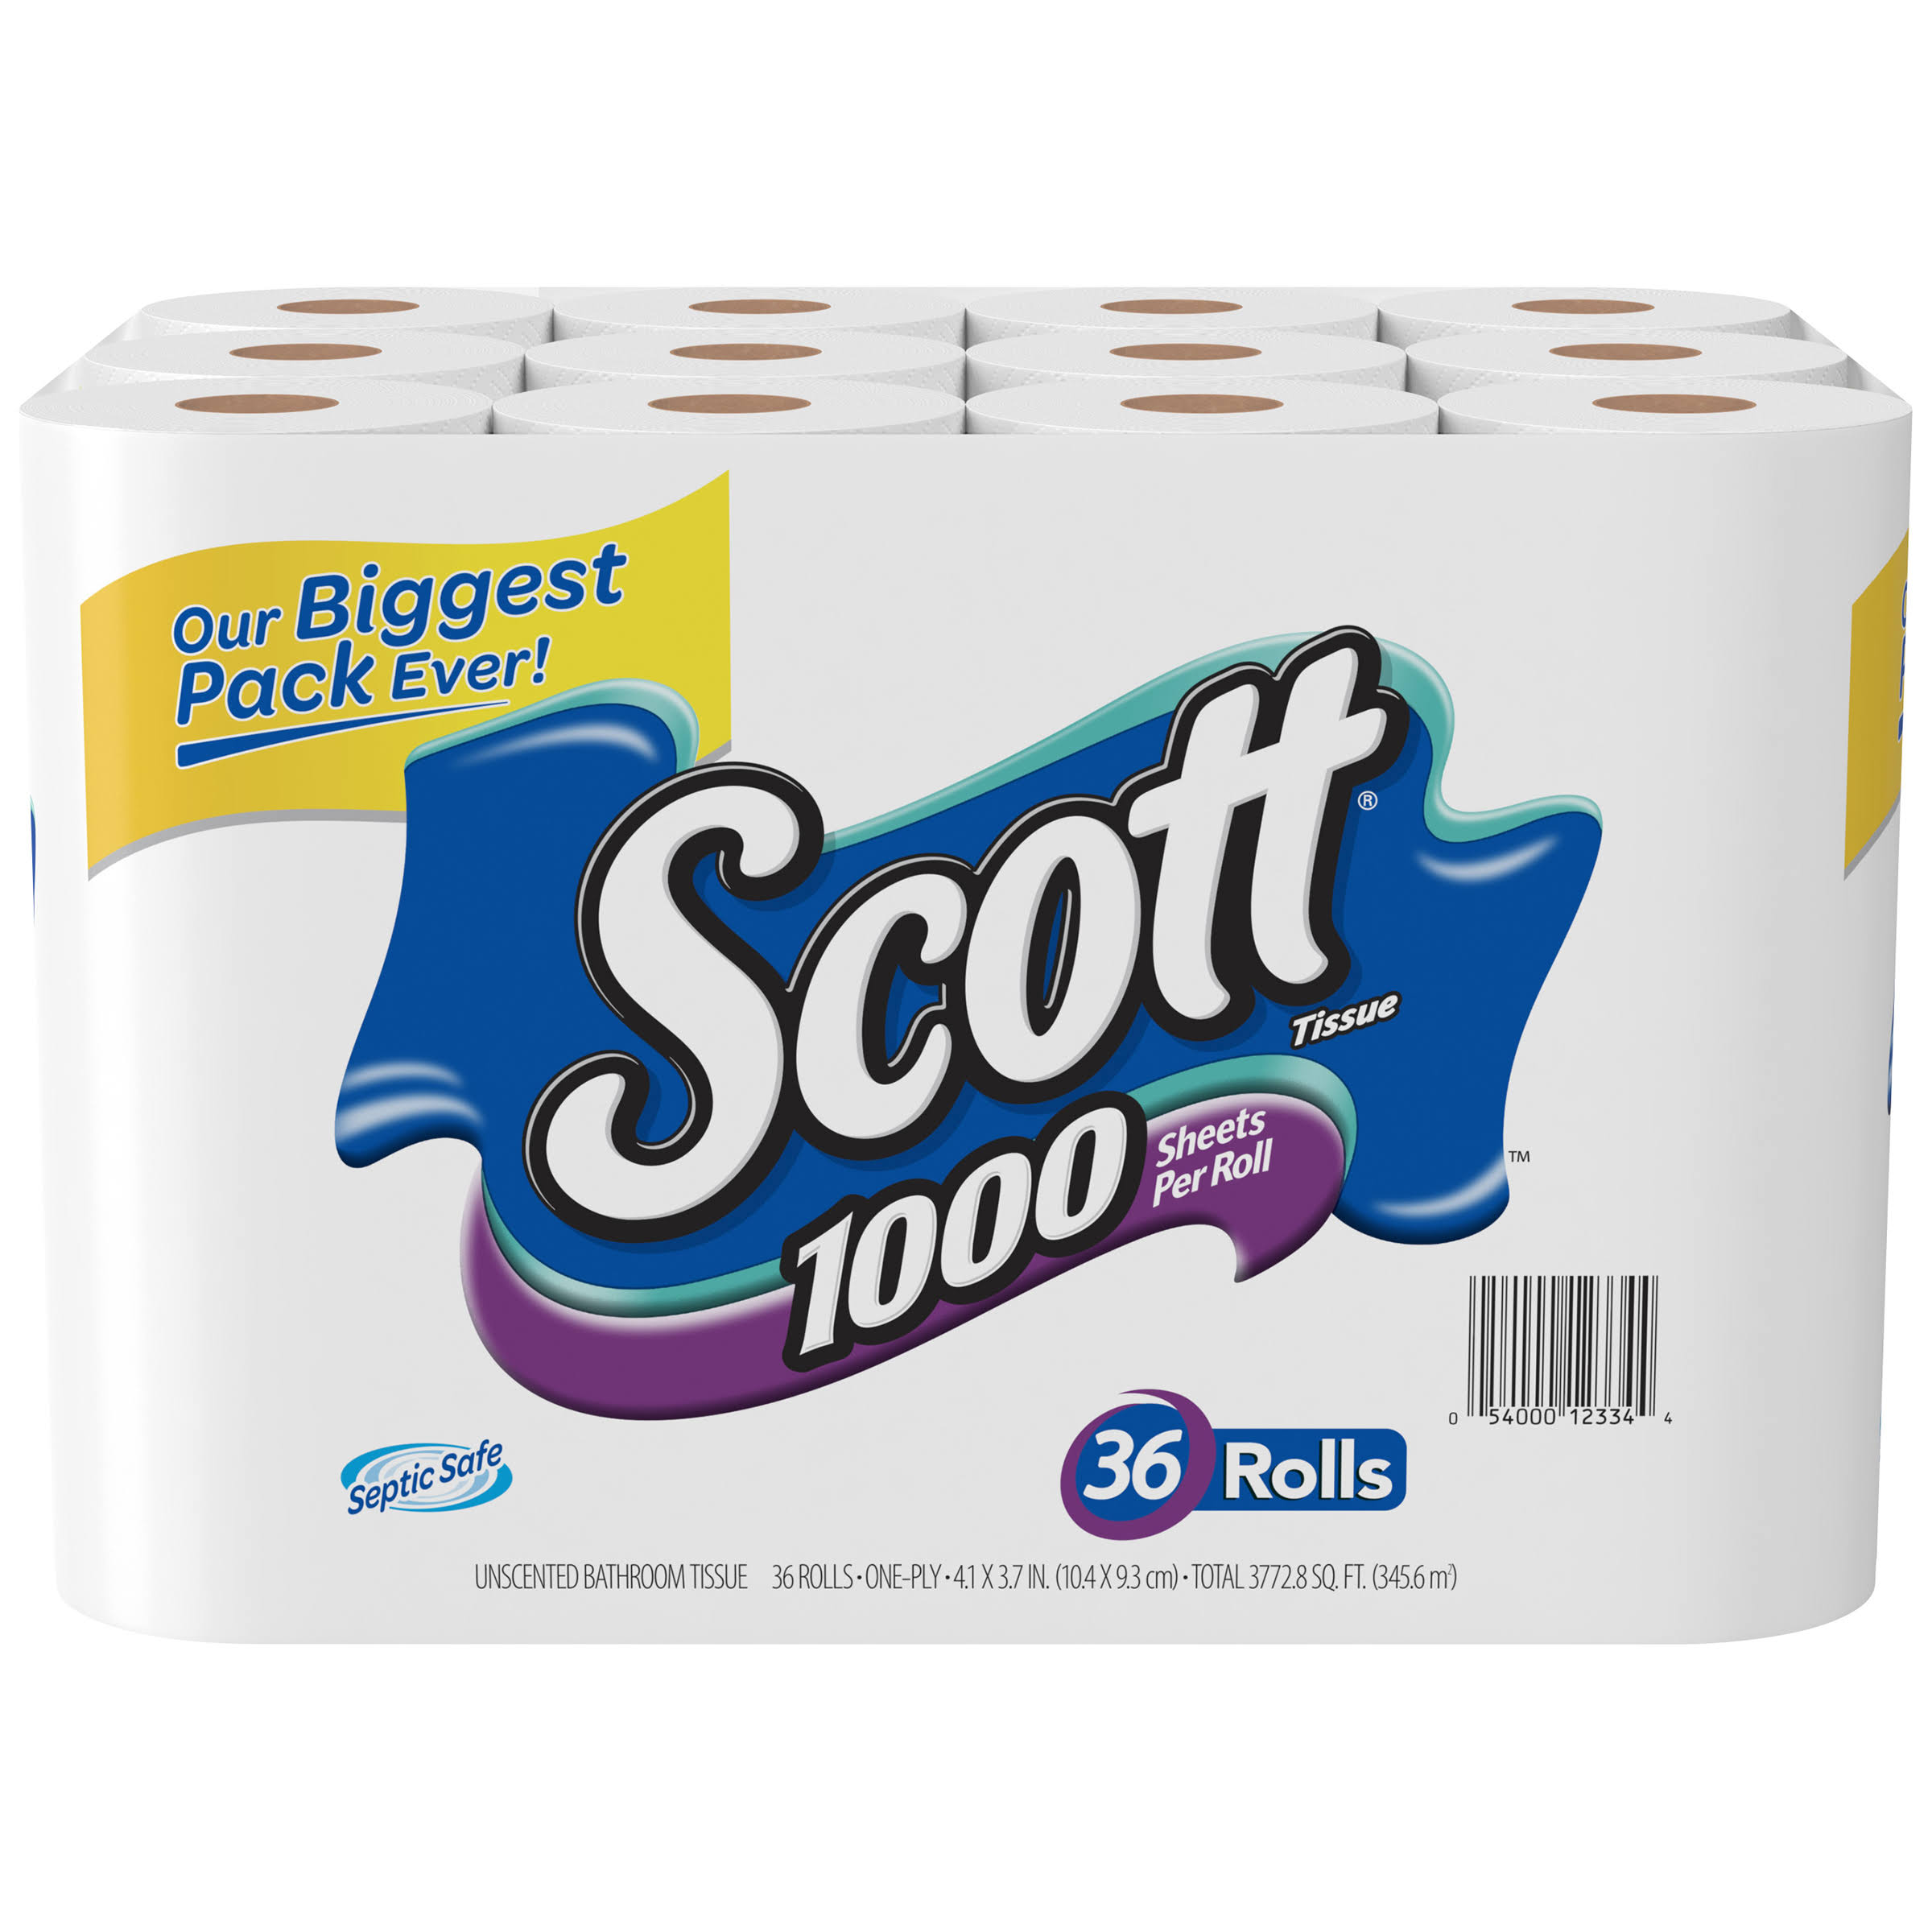 Scott 1000 Bathroom Tissue - 36 Rolls